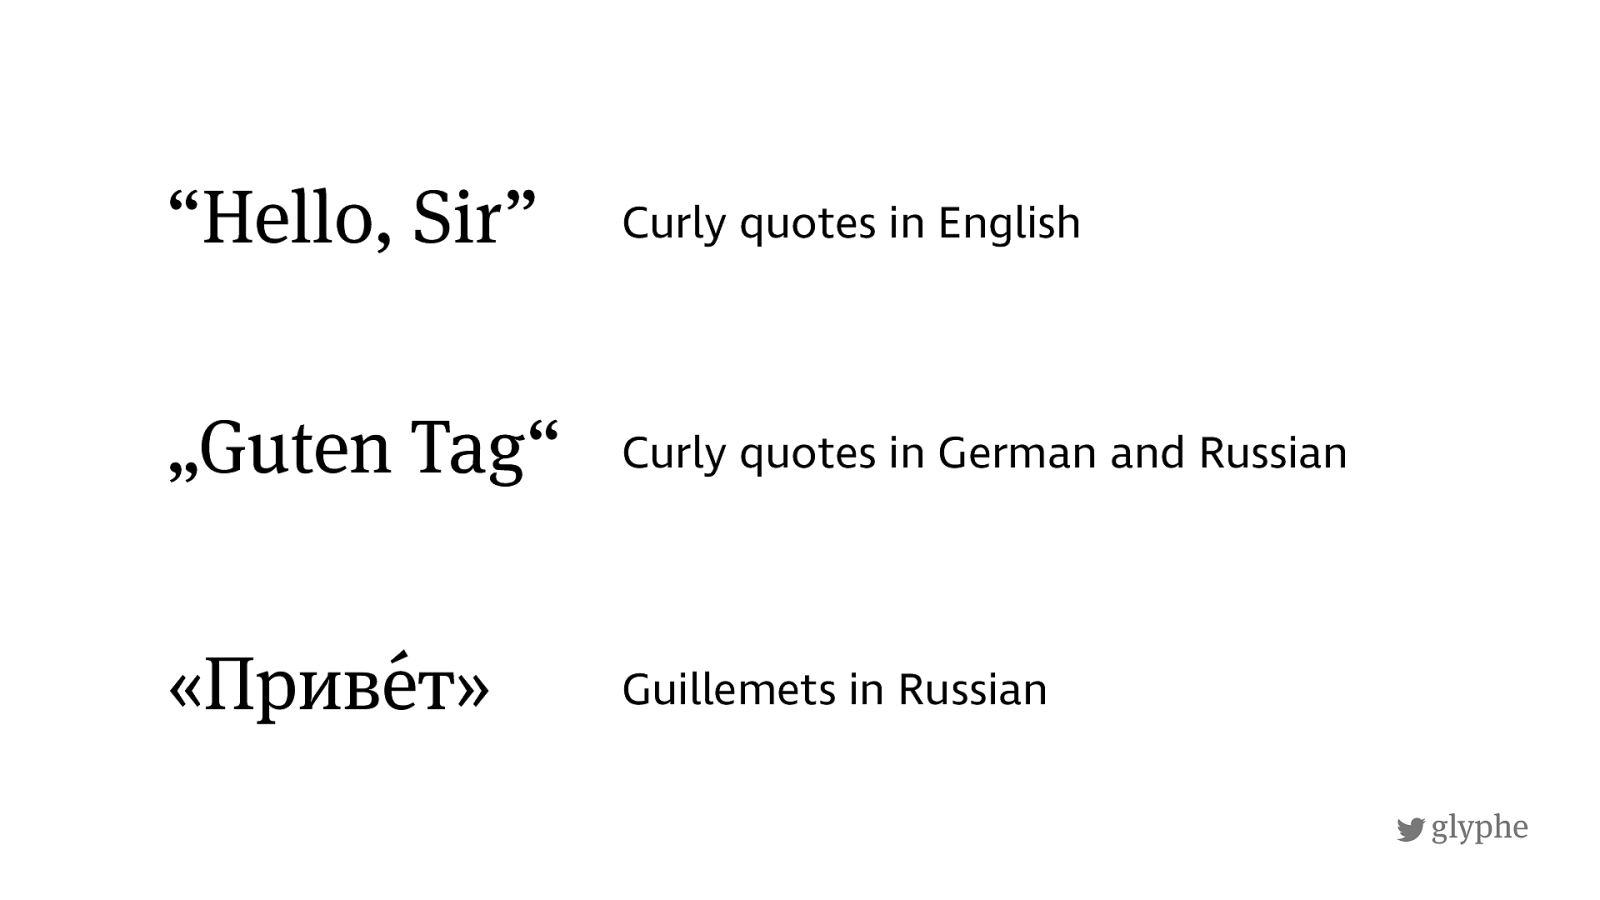 Curly quotes in English, German and Russian for nested quotes, Guillemets in Russian